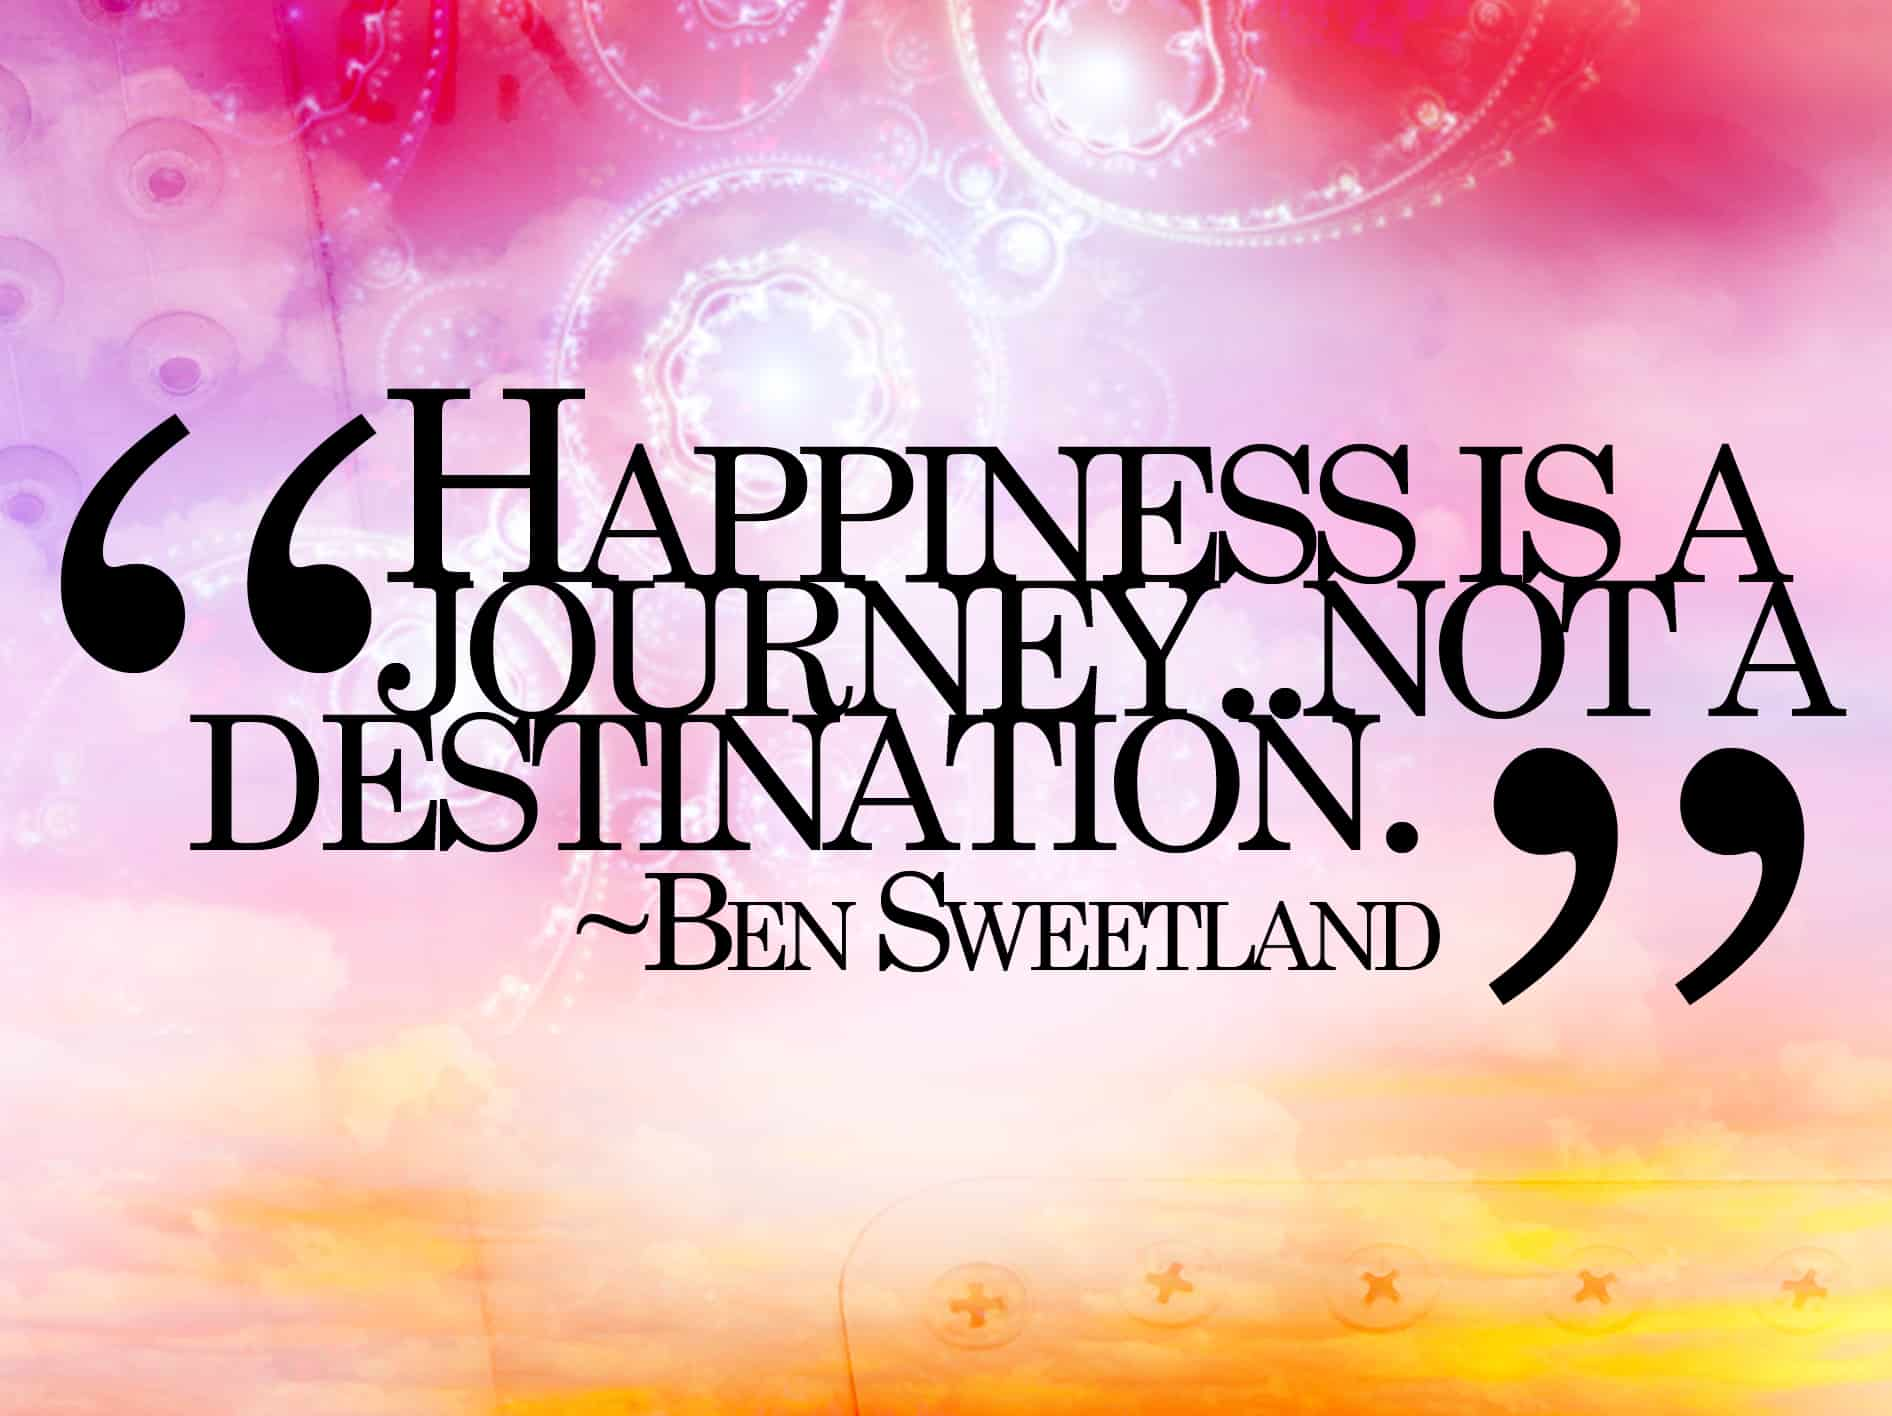 Happiness_Quote_by_cho_oka